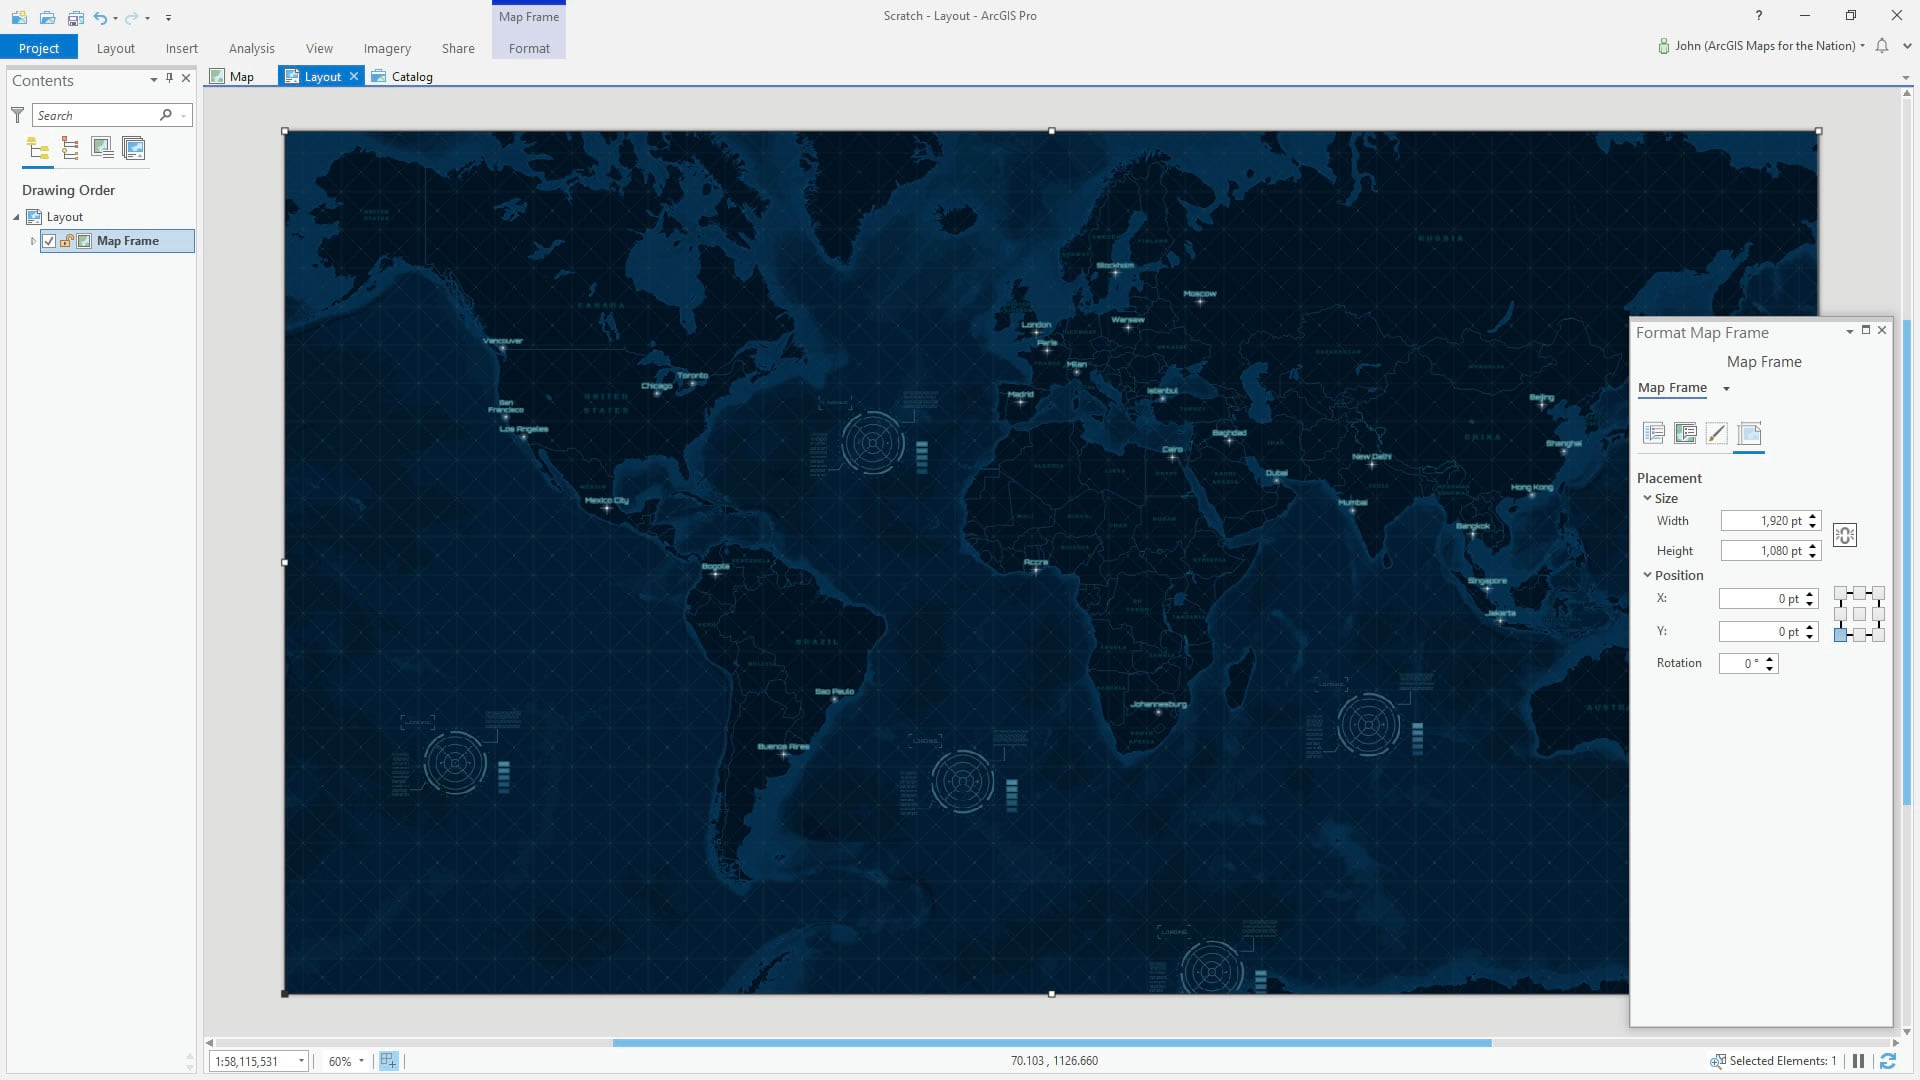 Create and ArcGIS Pro layout